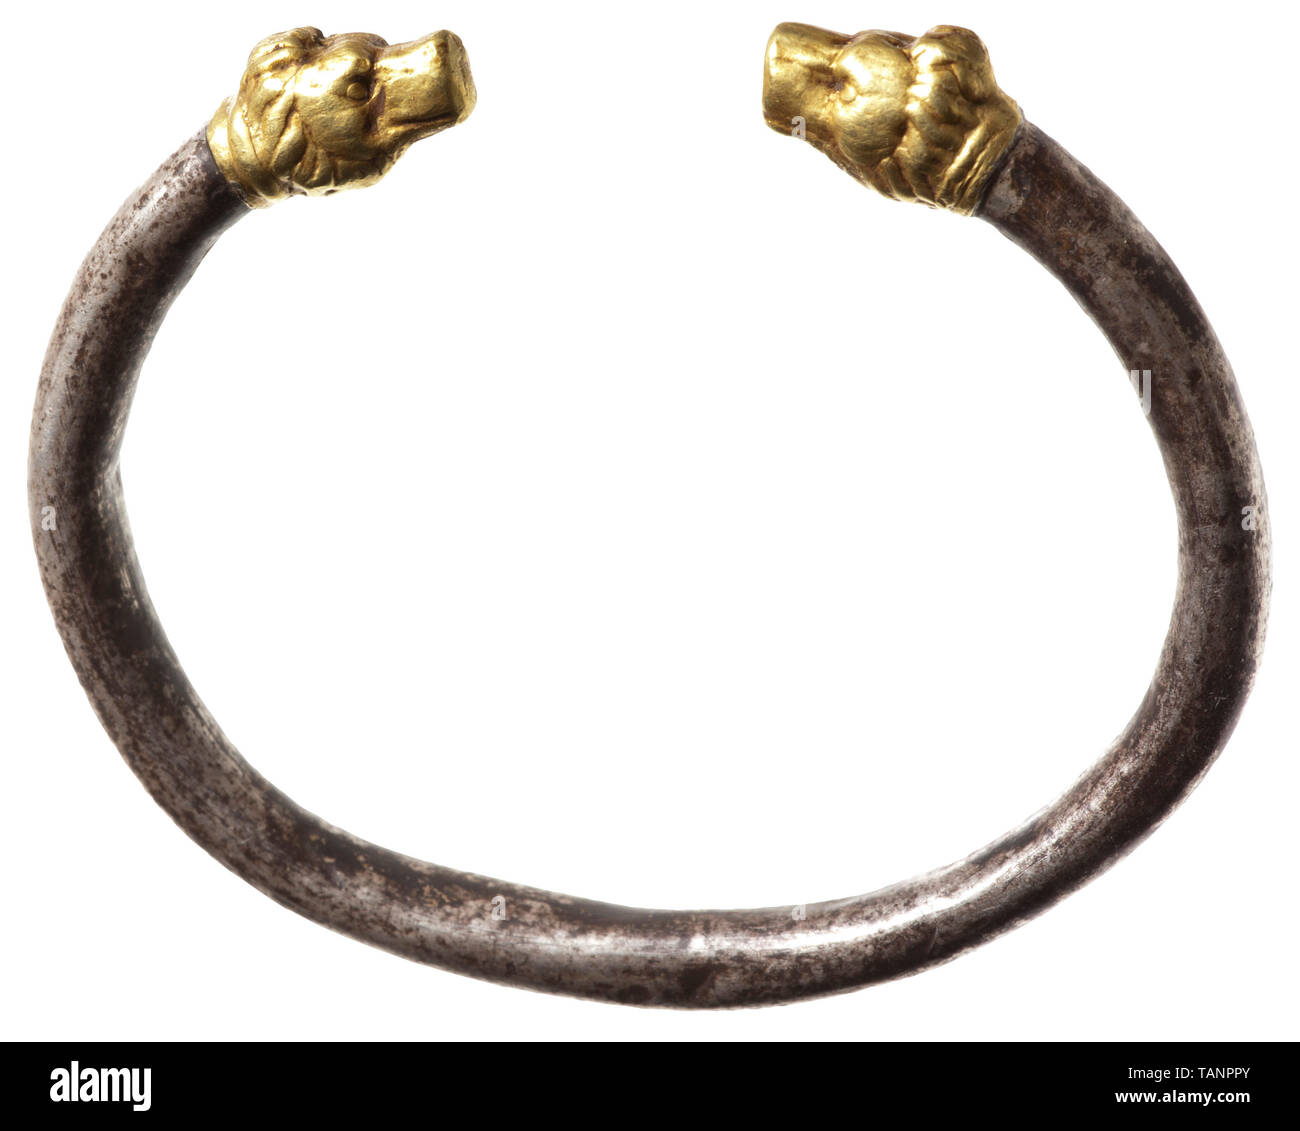 A Hellenistic lion's head bracelet, 3rd century BC, Bangle bracelet of circular section, made of thick sheet silver. Soldered to the ends are gold lion heads made of robust pressed sheet. The hollow metal parts probably stabilised internally with filling material. Weight 20.59 g. Diameter of the silver bangle 5 mm. Maximum width of the bracelet 6.8 cm. Provenance: Austrian private collection, purchased from an art dealer in Vienna in the 1980s. ancient world, ancient times, Greek, Hellas, historic, historical ancient world, Additional-Rights-Clearance-Info-Not-Available - Stock Image